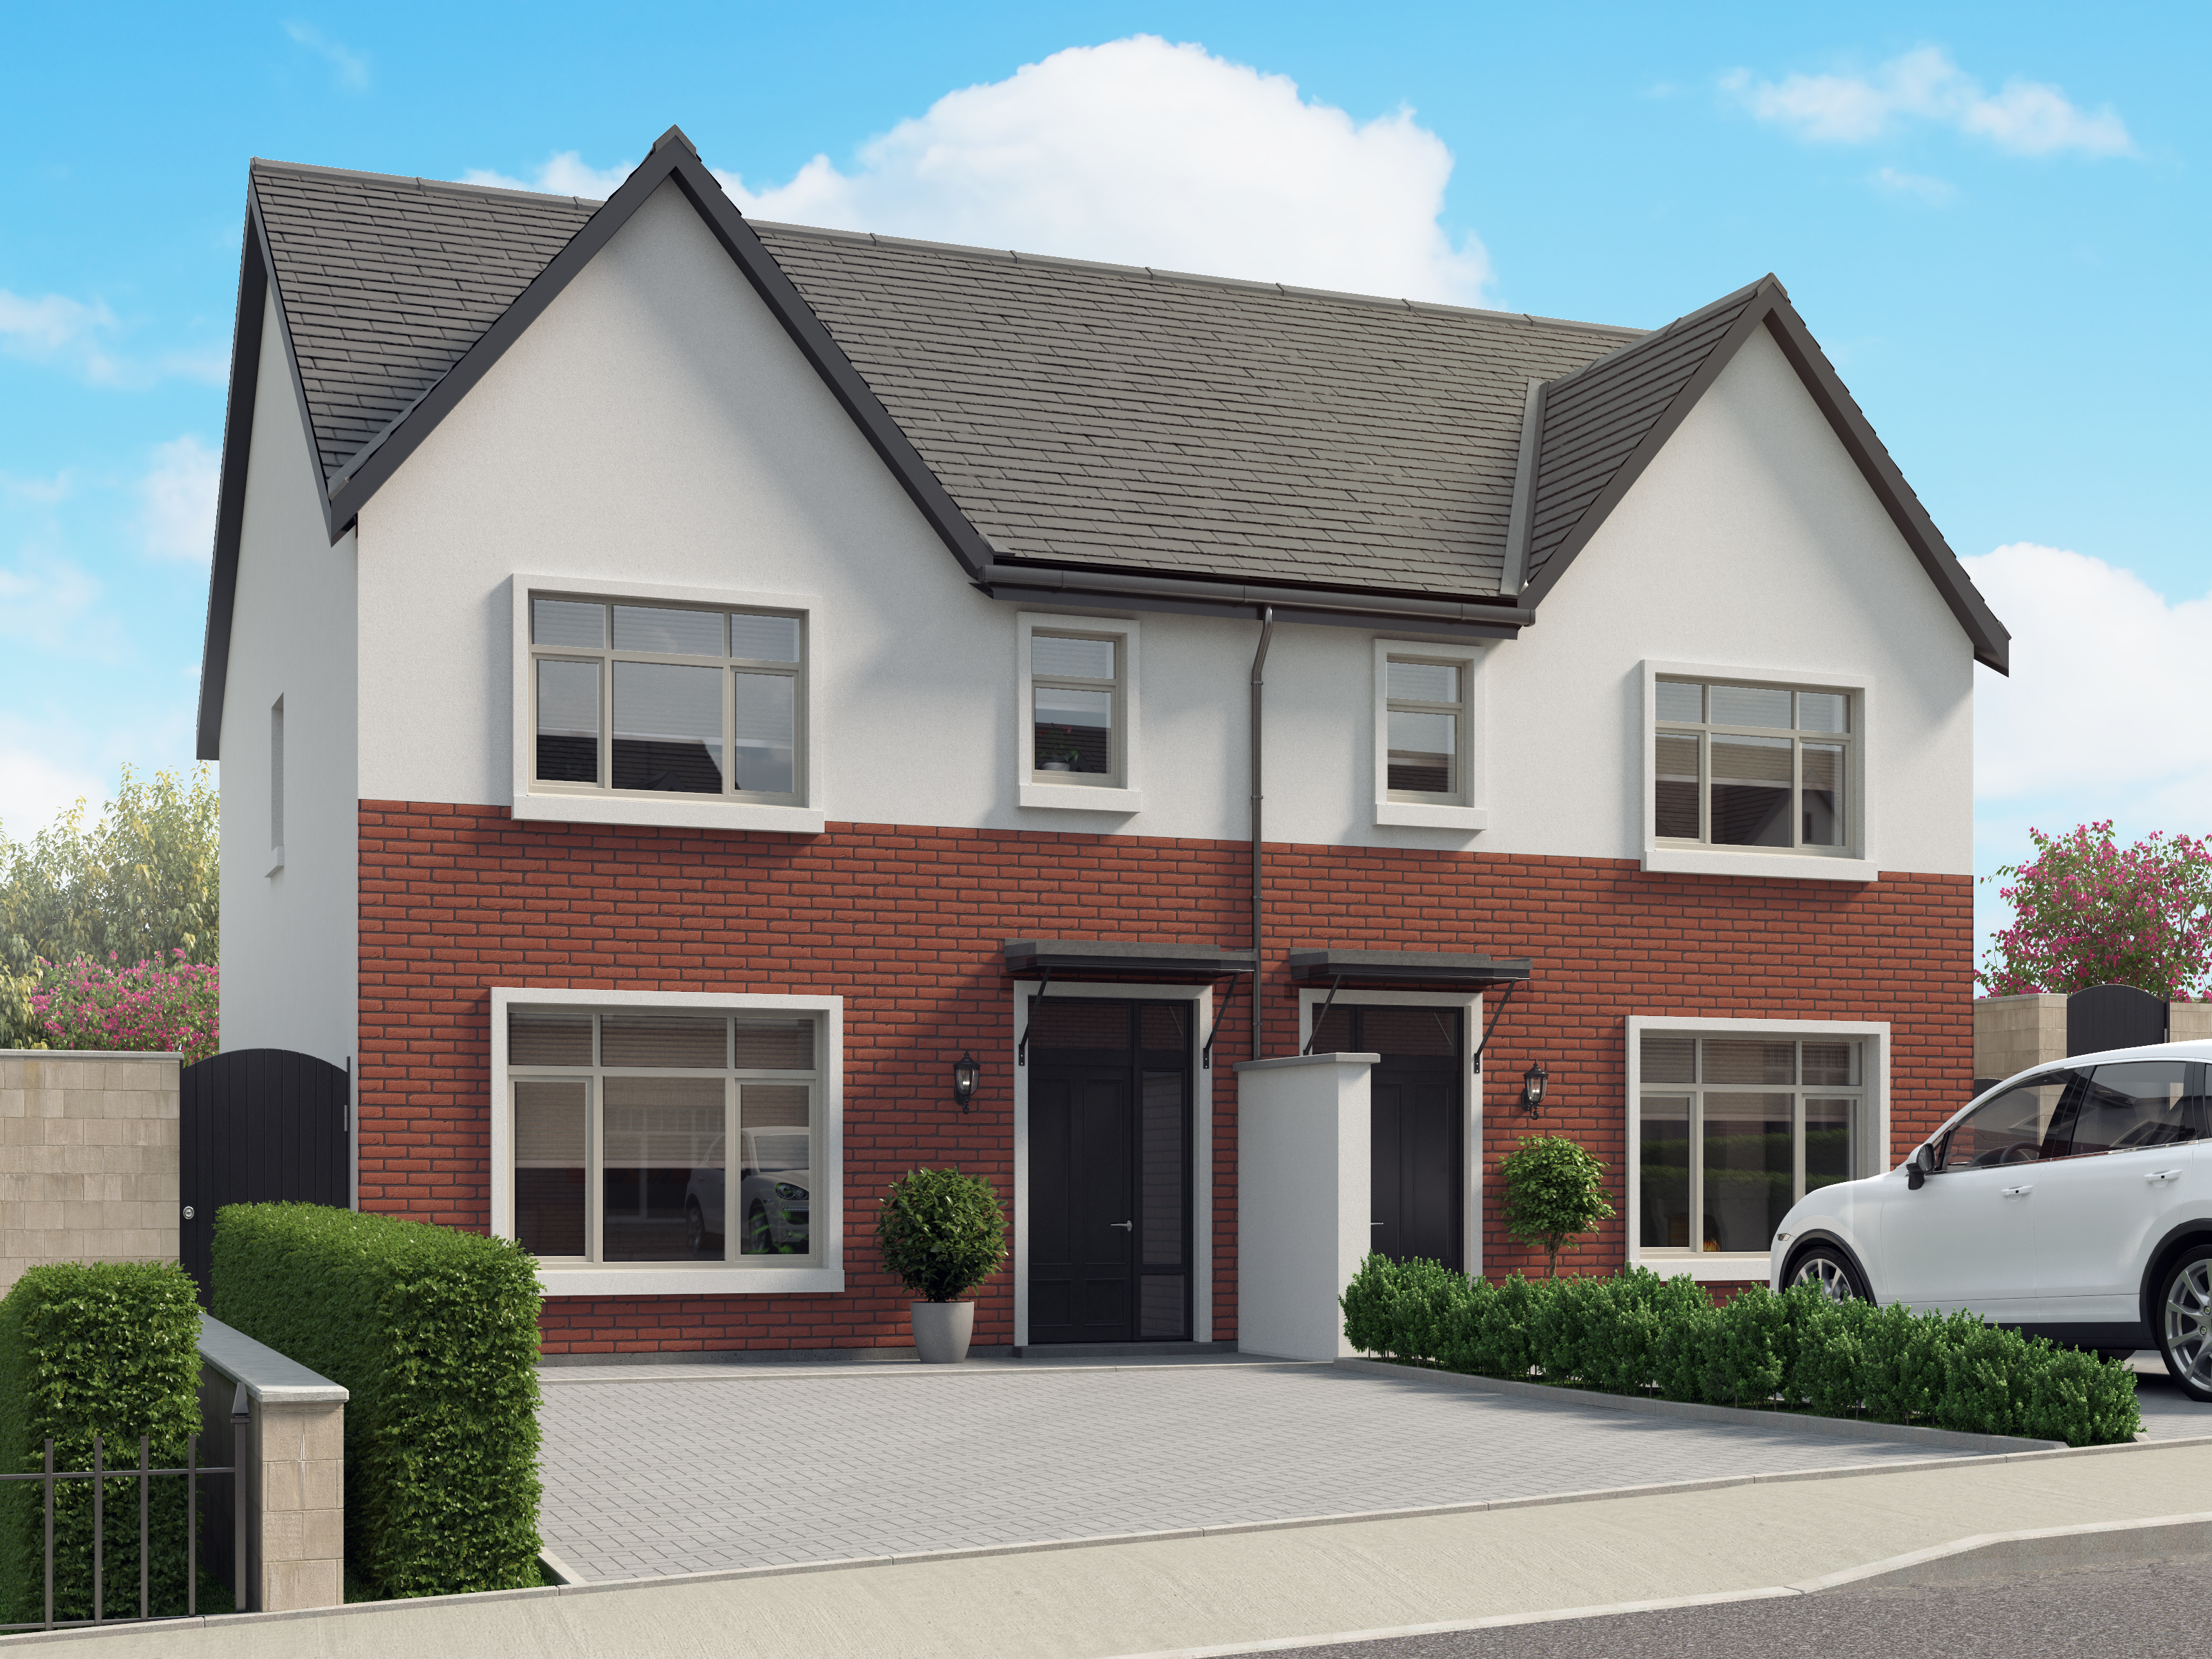 The Willows, Janeville, Cork Road, Carrigaline, Co. Cork